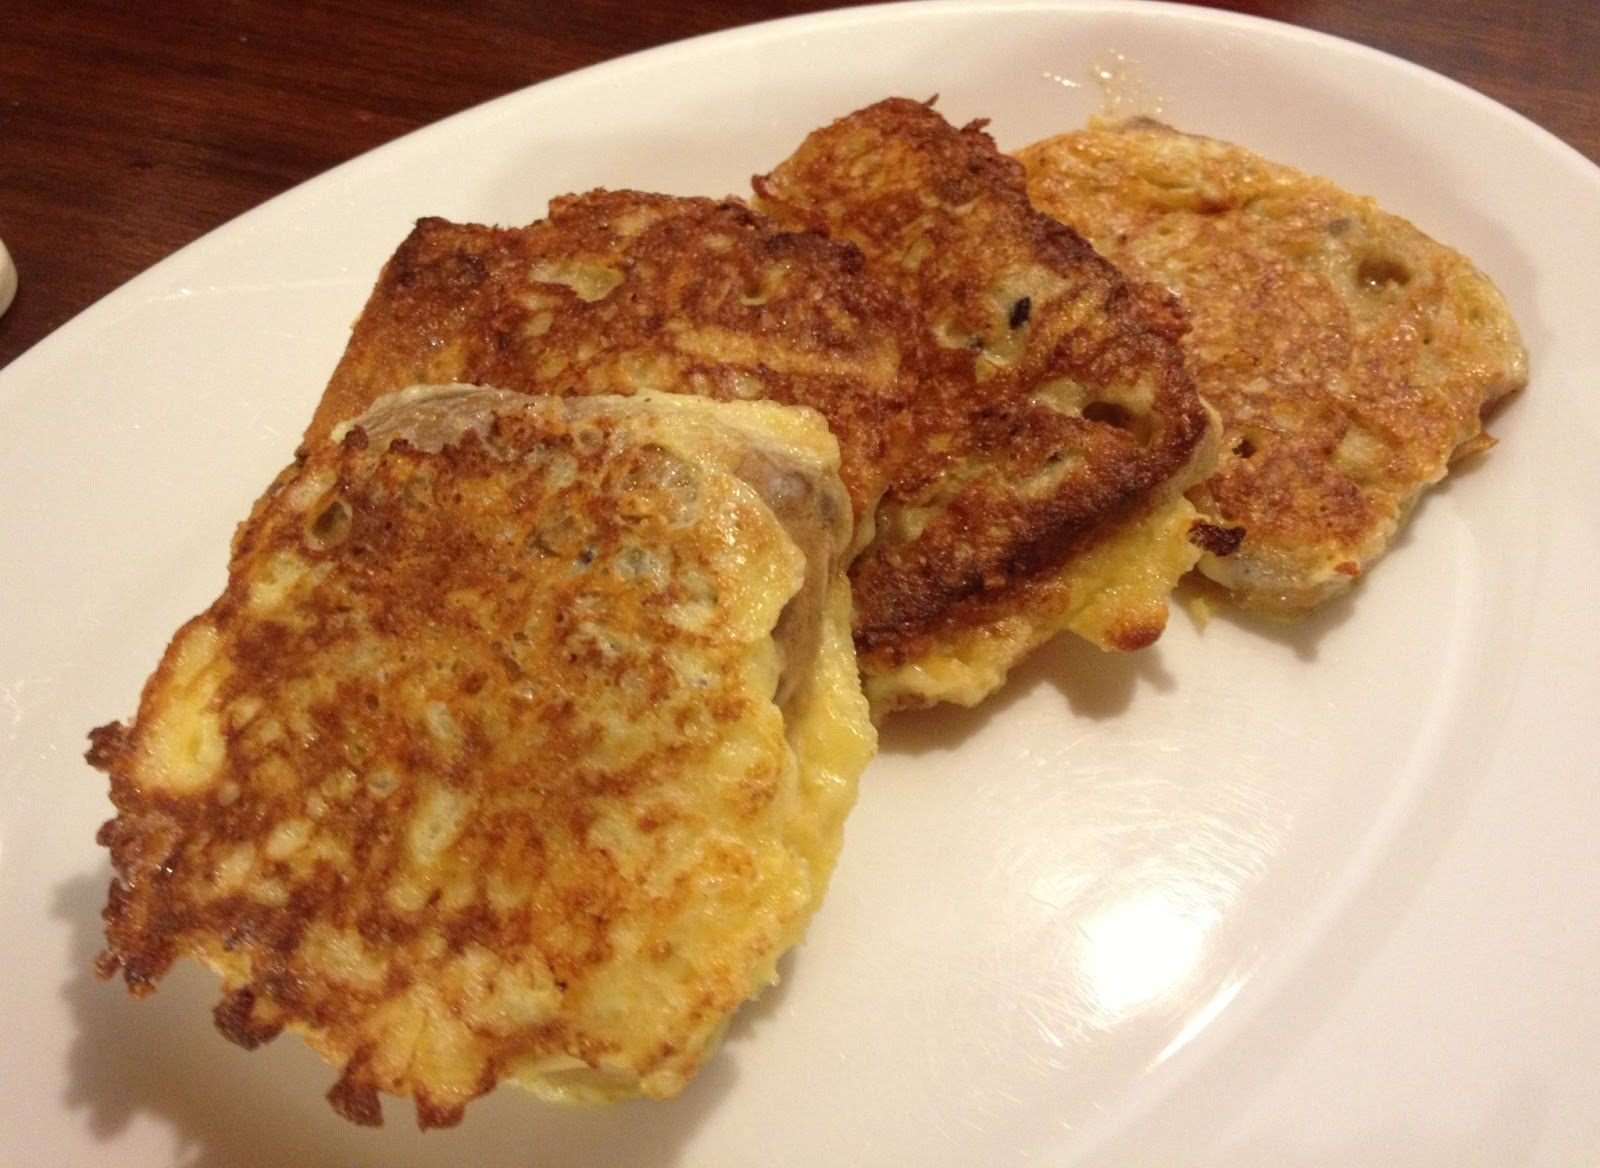 Free From G.: Gluten Free French Toast - Eggy Bread Free From G Style